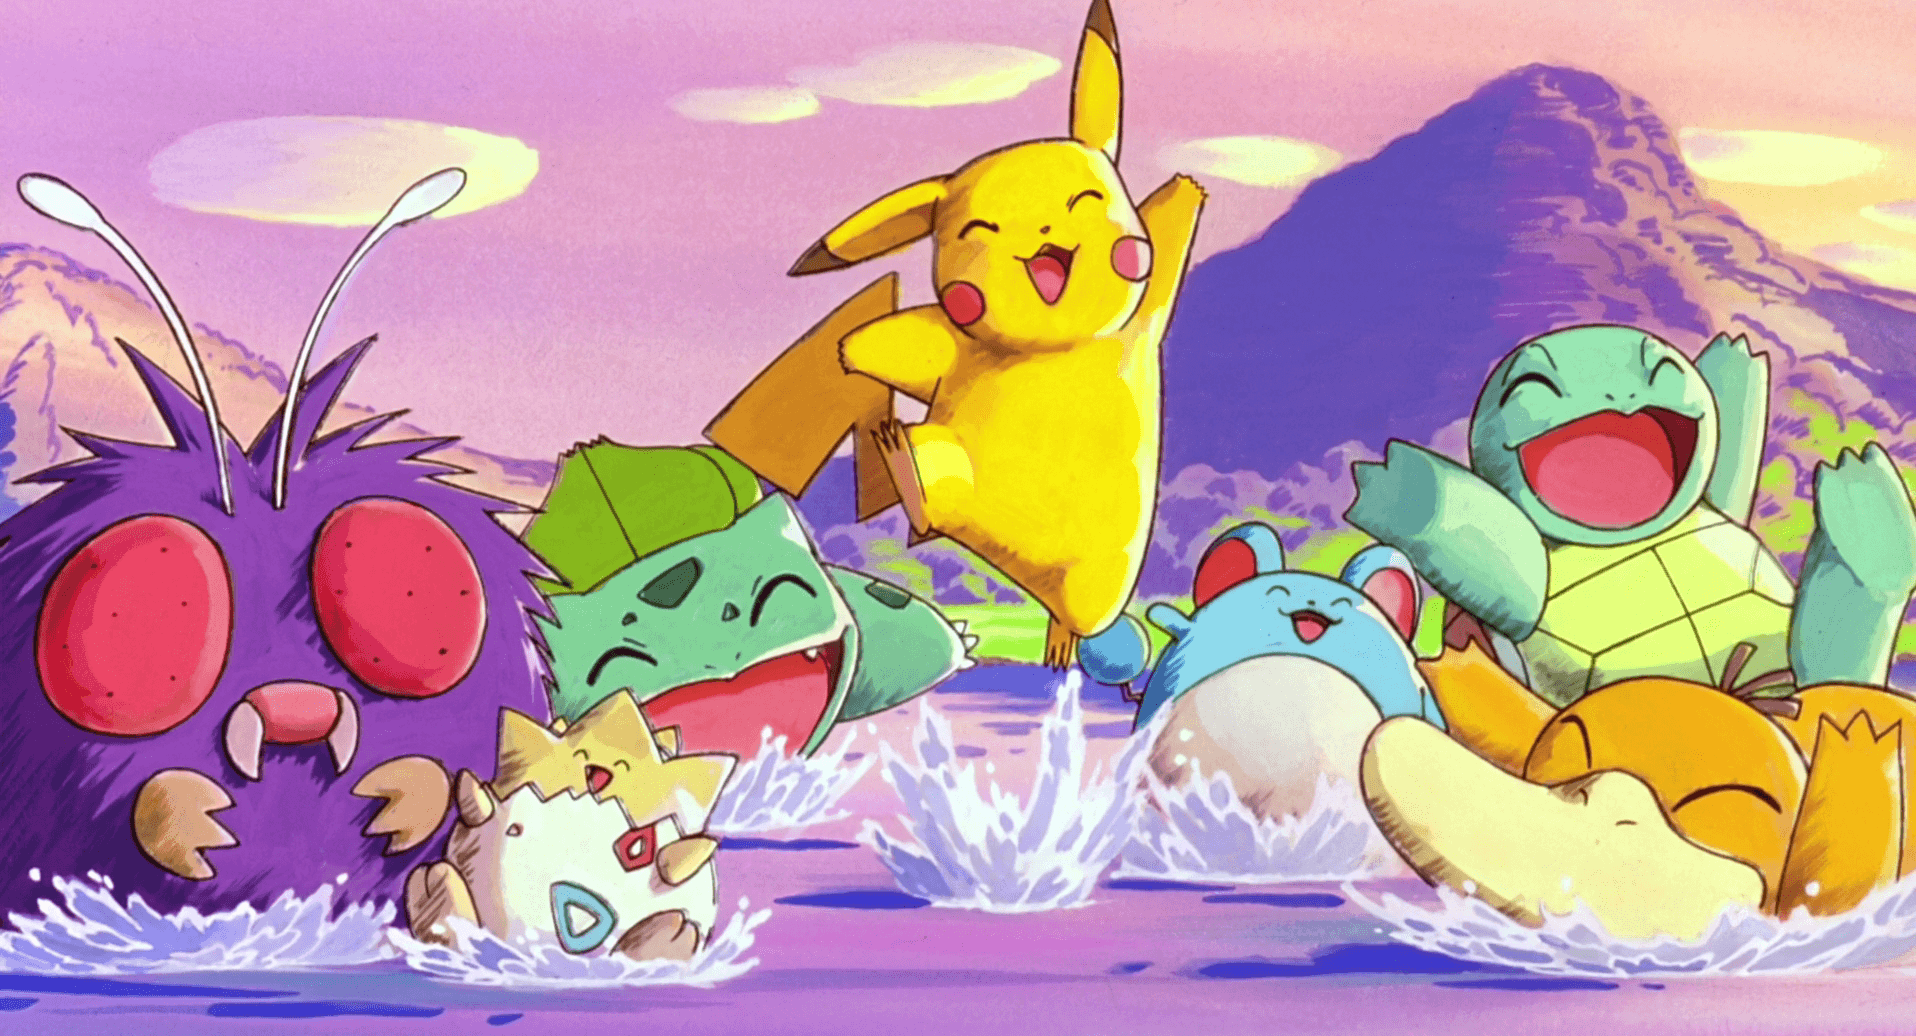 Pokémon Wallpaper and Background Image | 1916x1036 | ID:662149